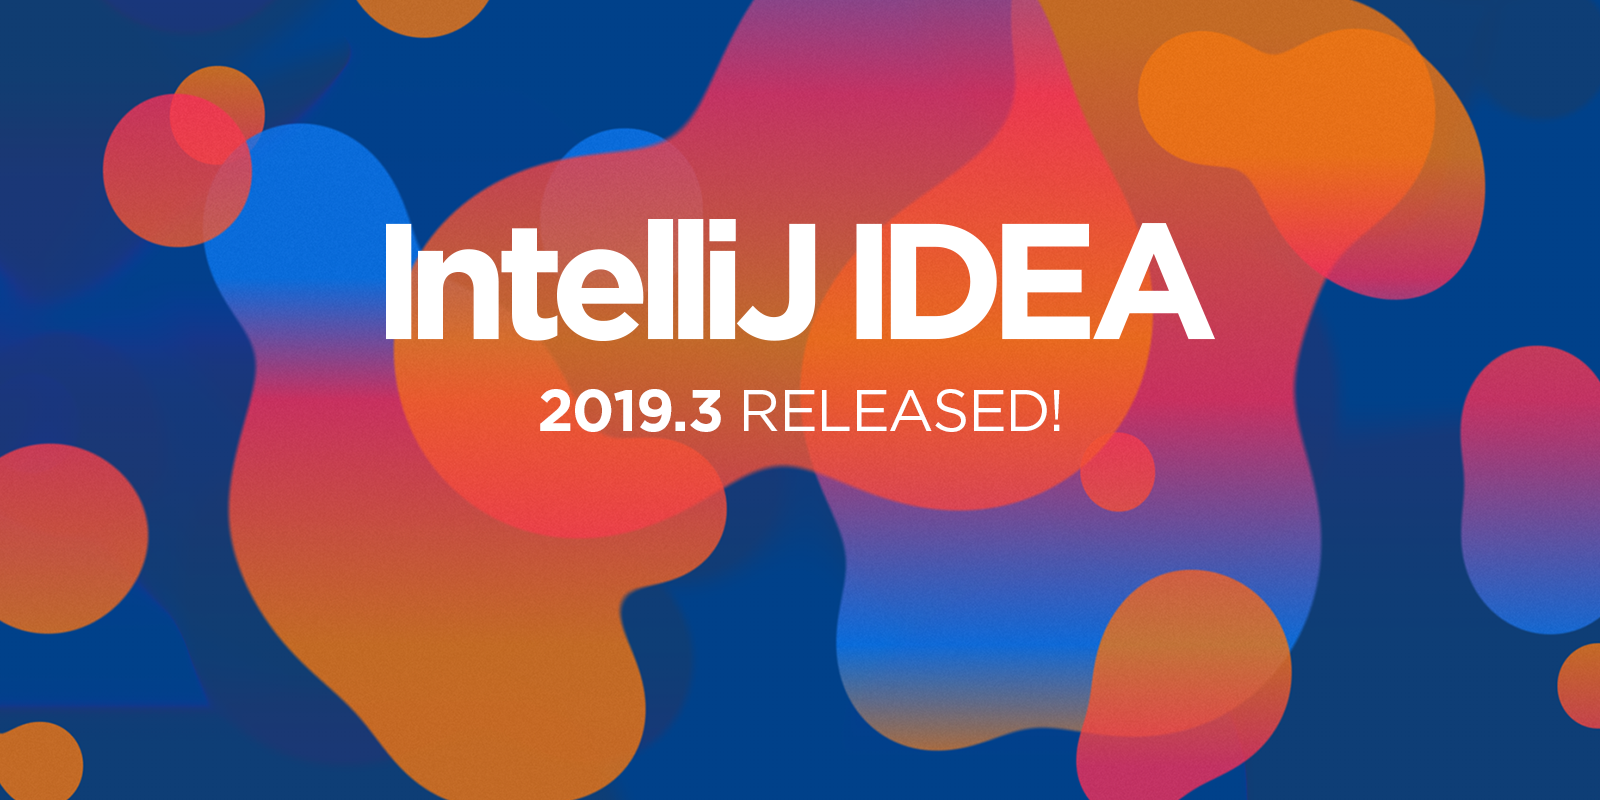 IntelliJ IDEA 2019.3 release